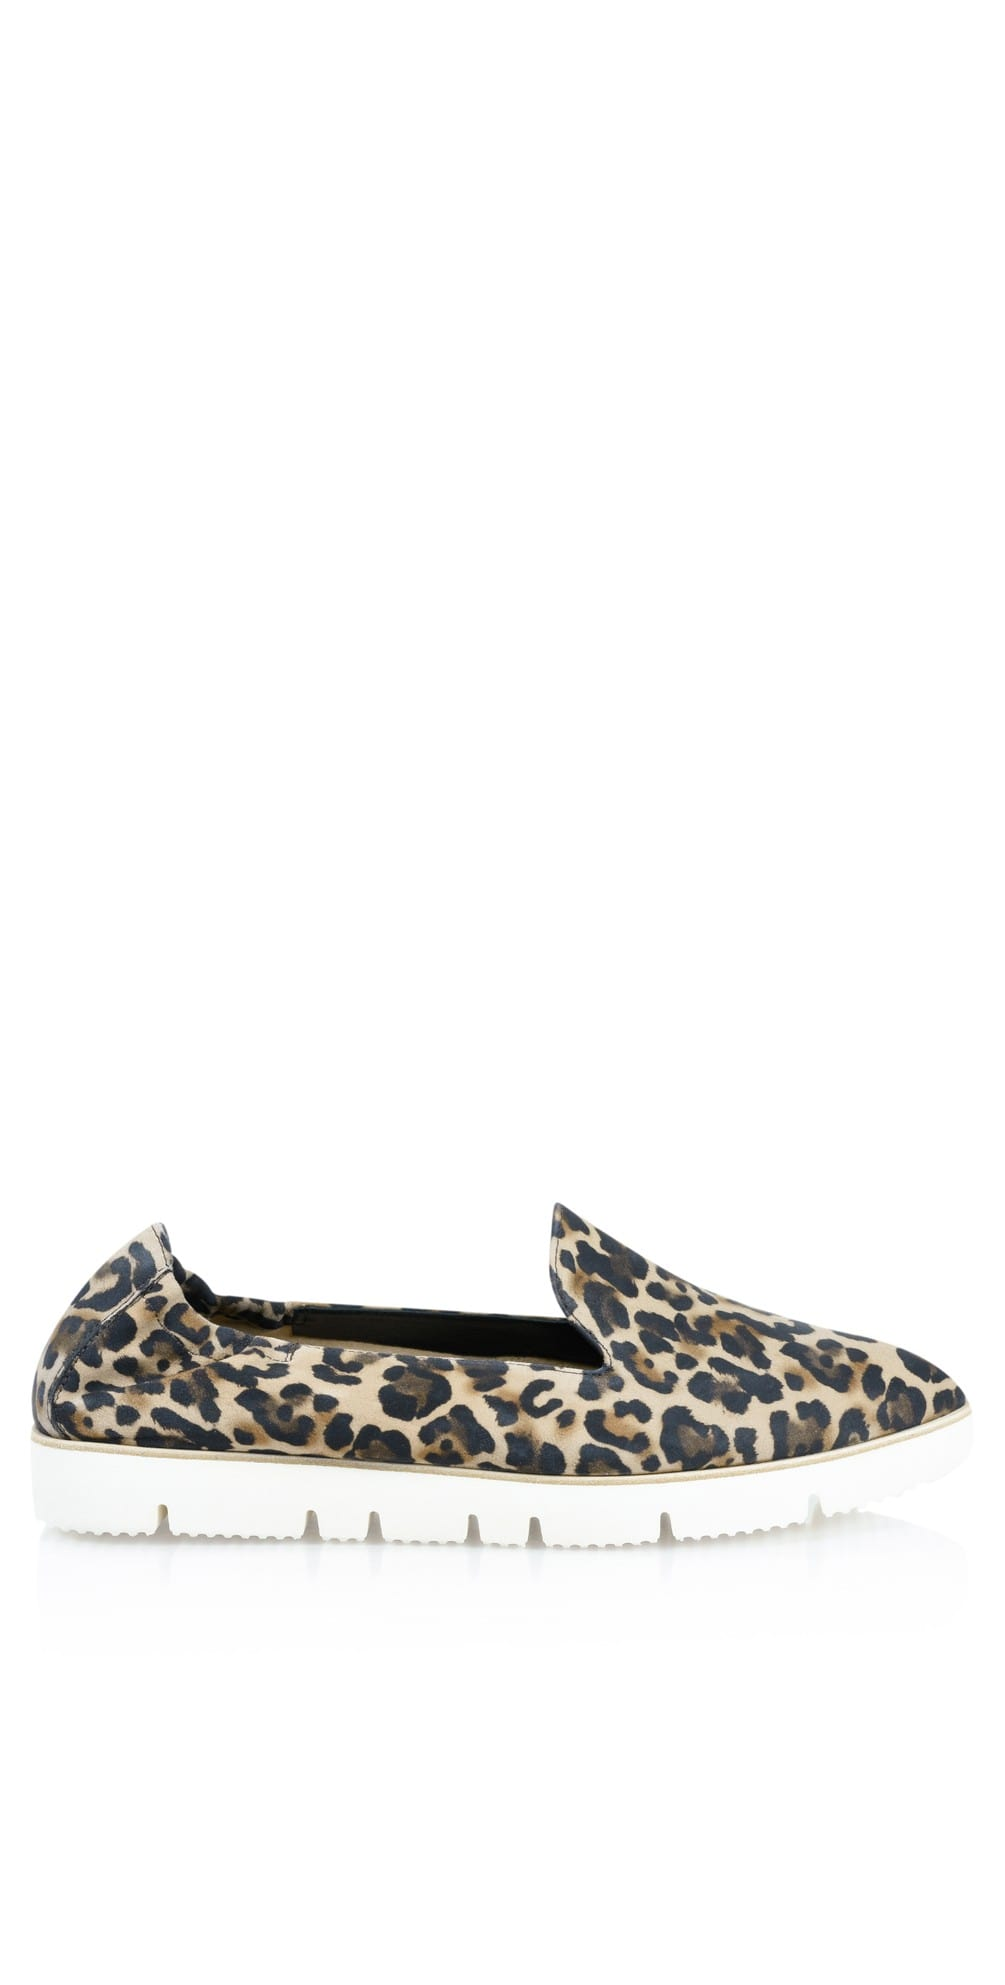 Kennel & Schmenger Shoes Kennel & Schmenger Leopard Print Pump 21-92570-664 izzi-of-baslow